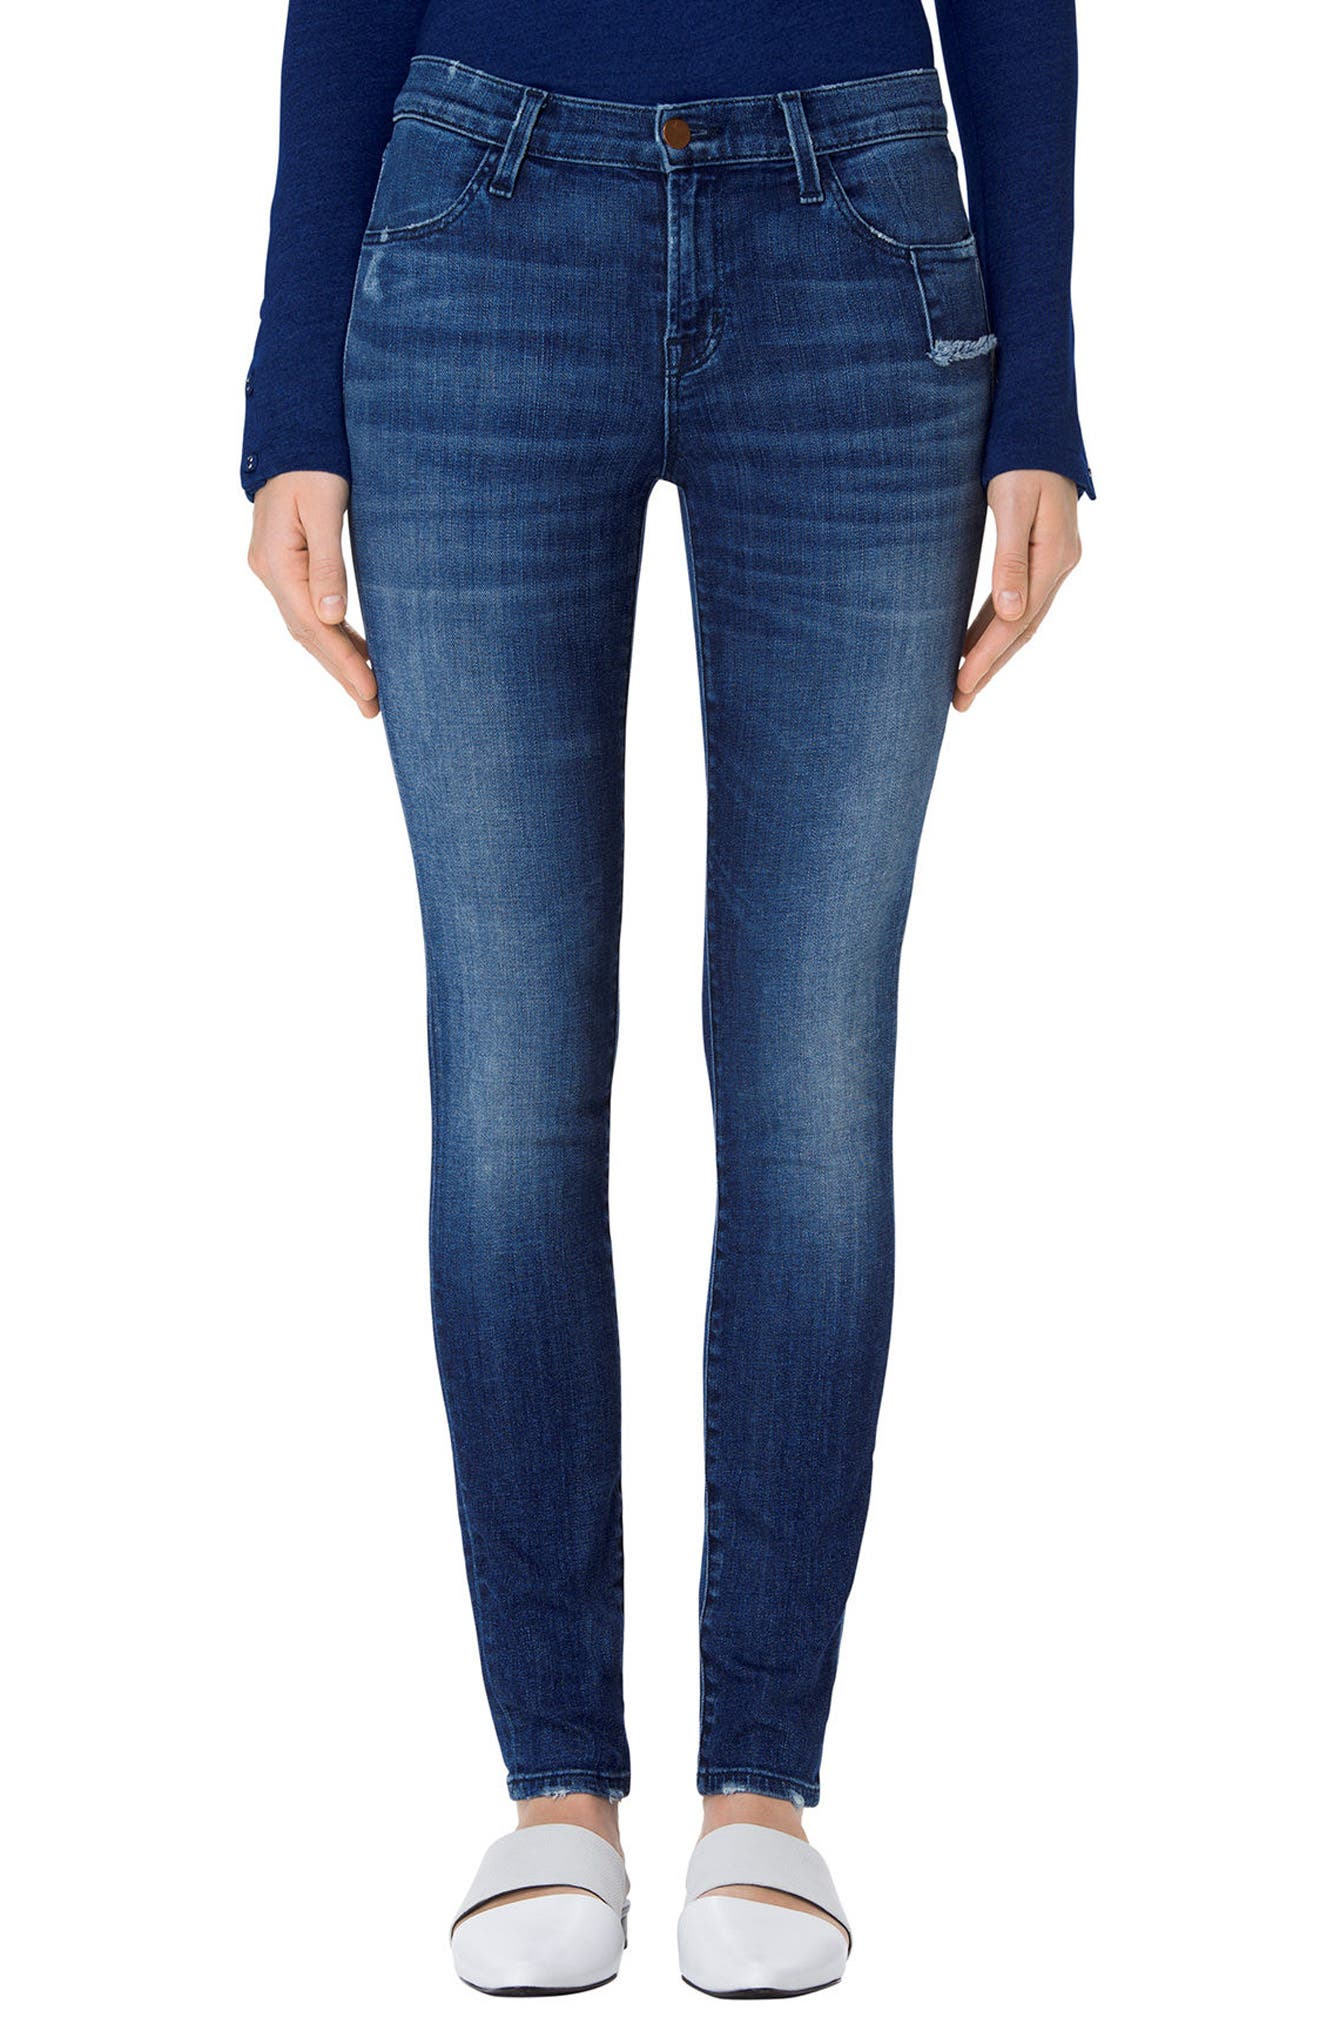 620 Skinny Jeans,                         Main,                         color, 470